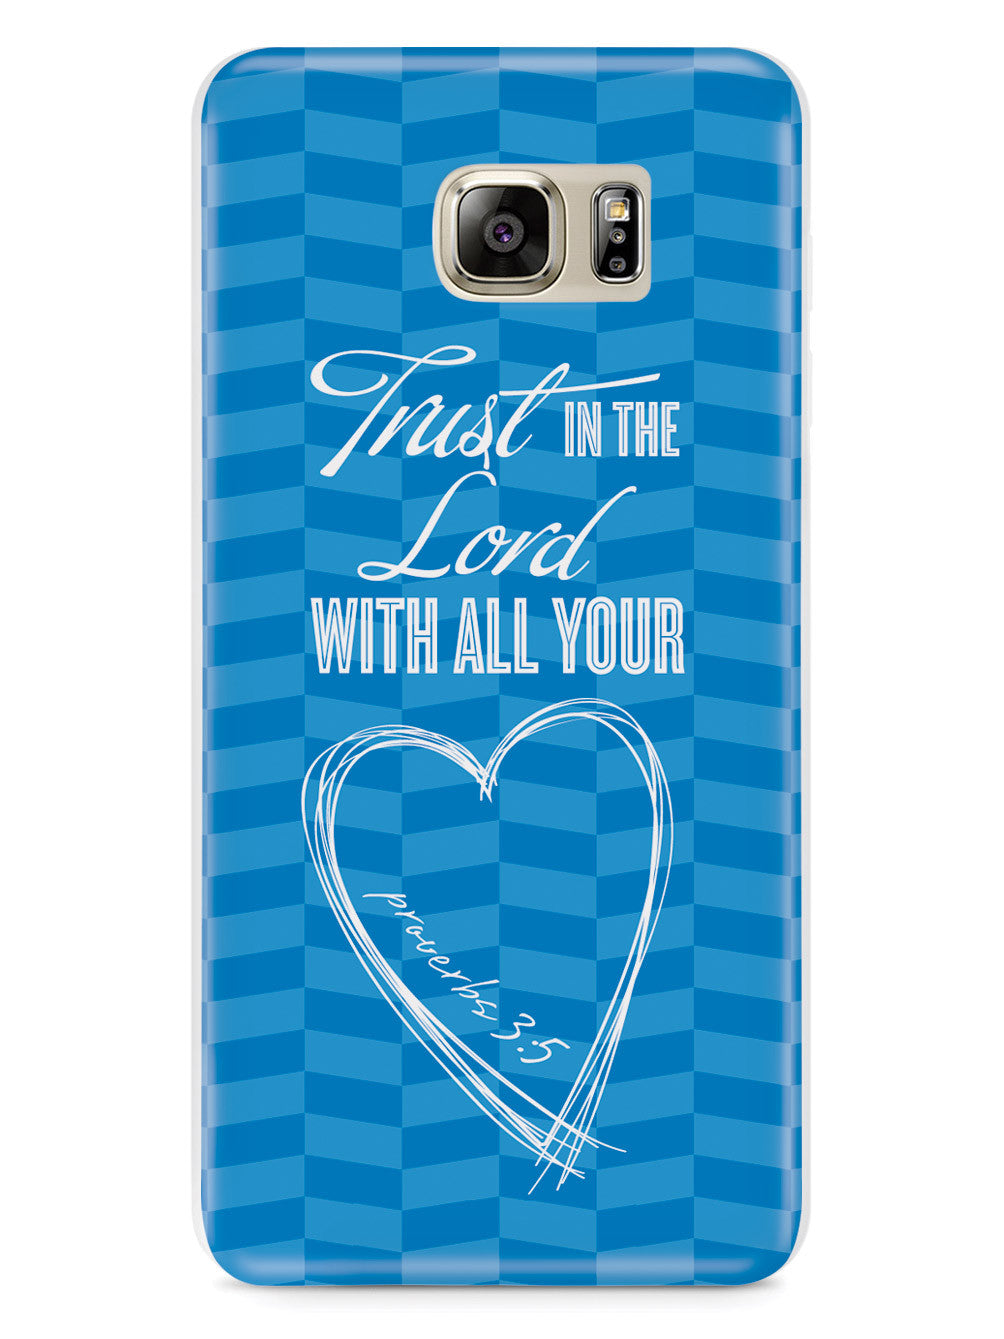 Proverbs 3:5 Bible Verse Case